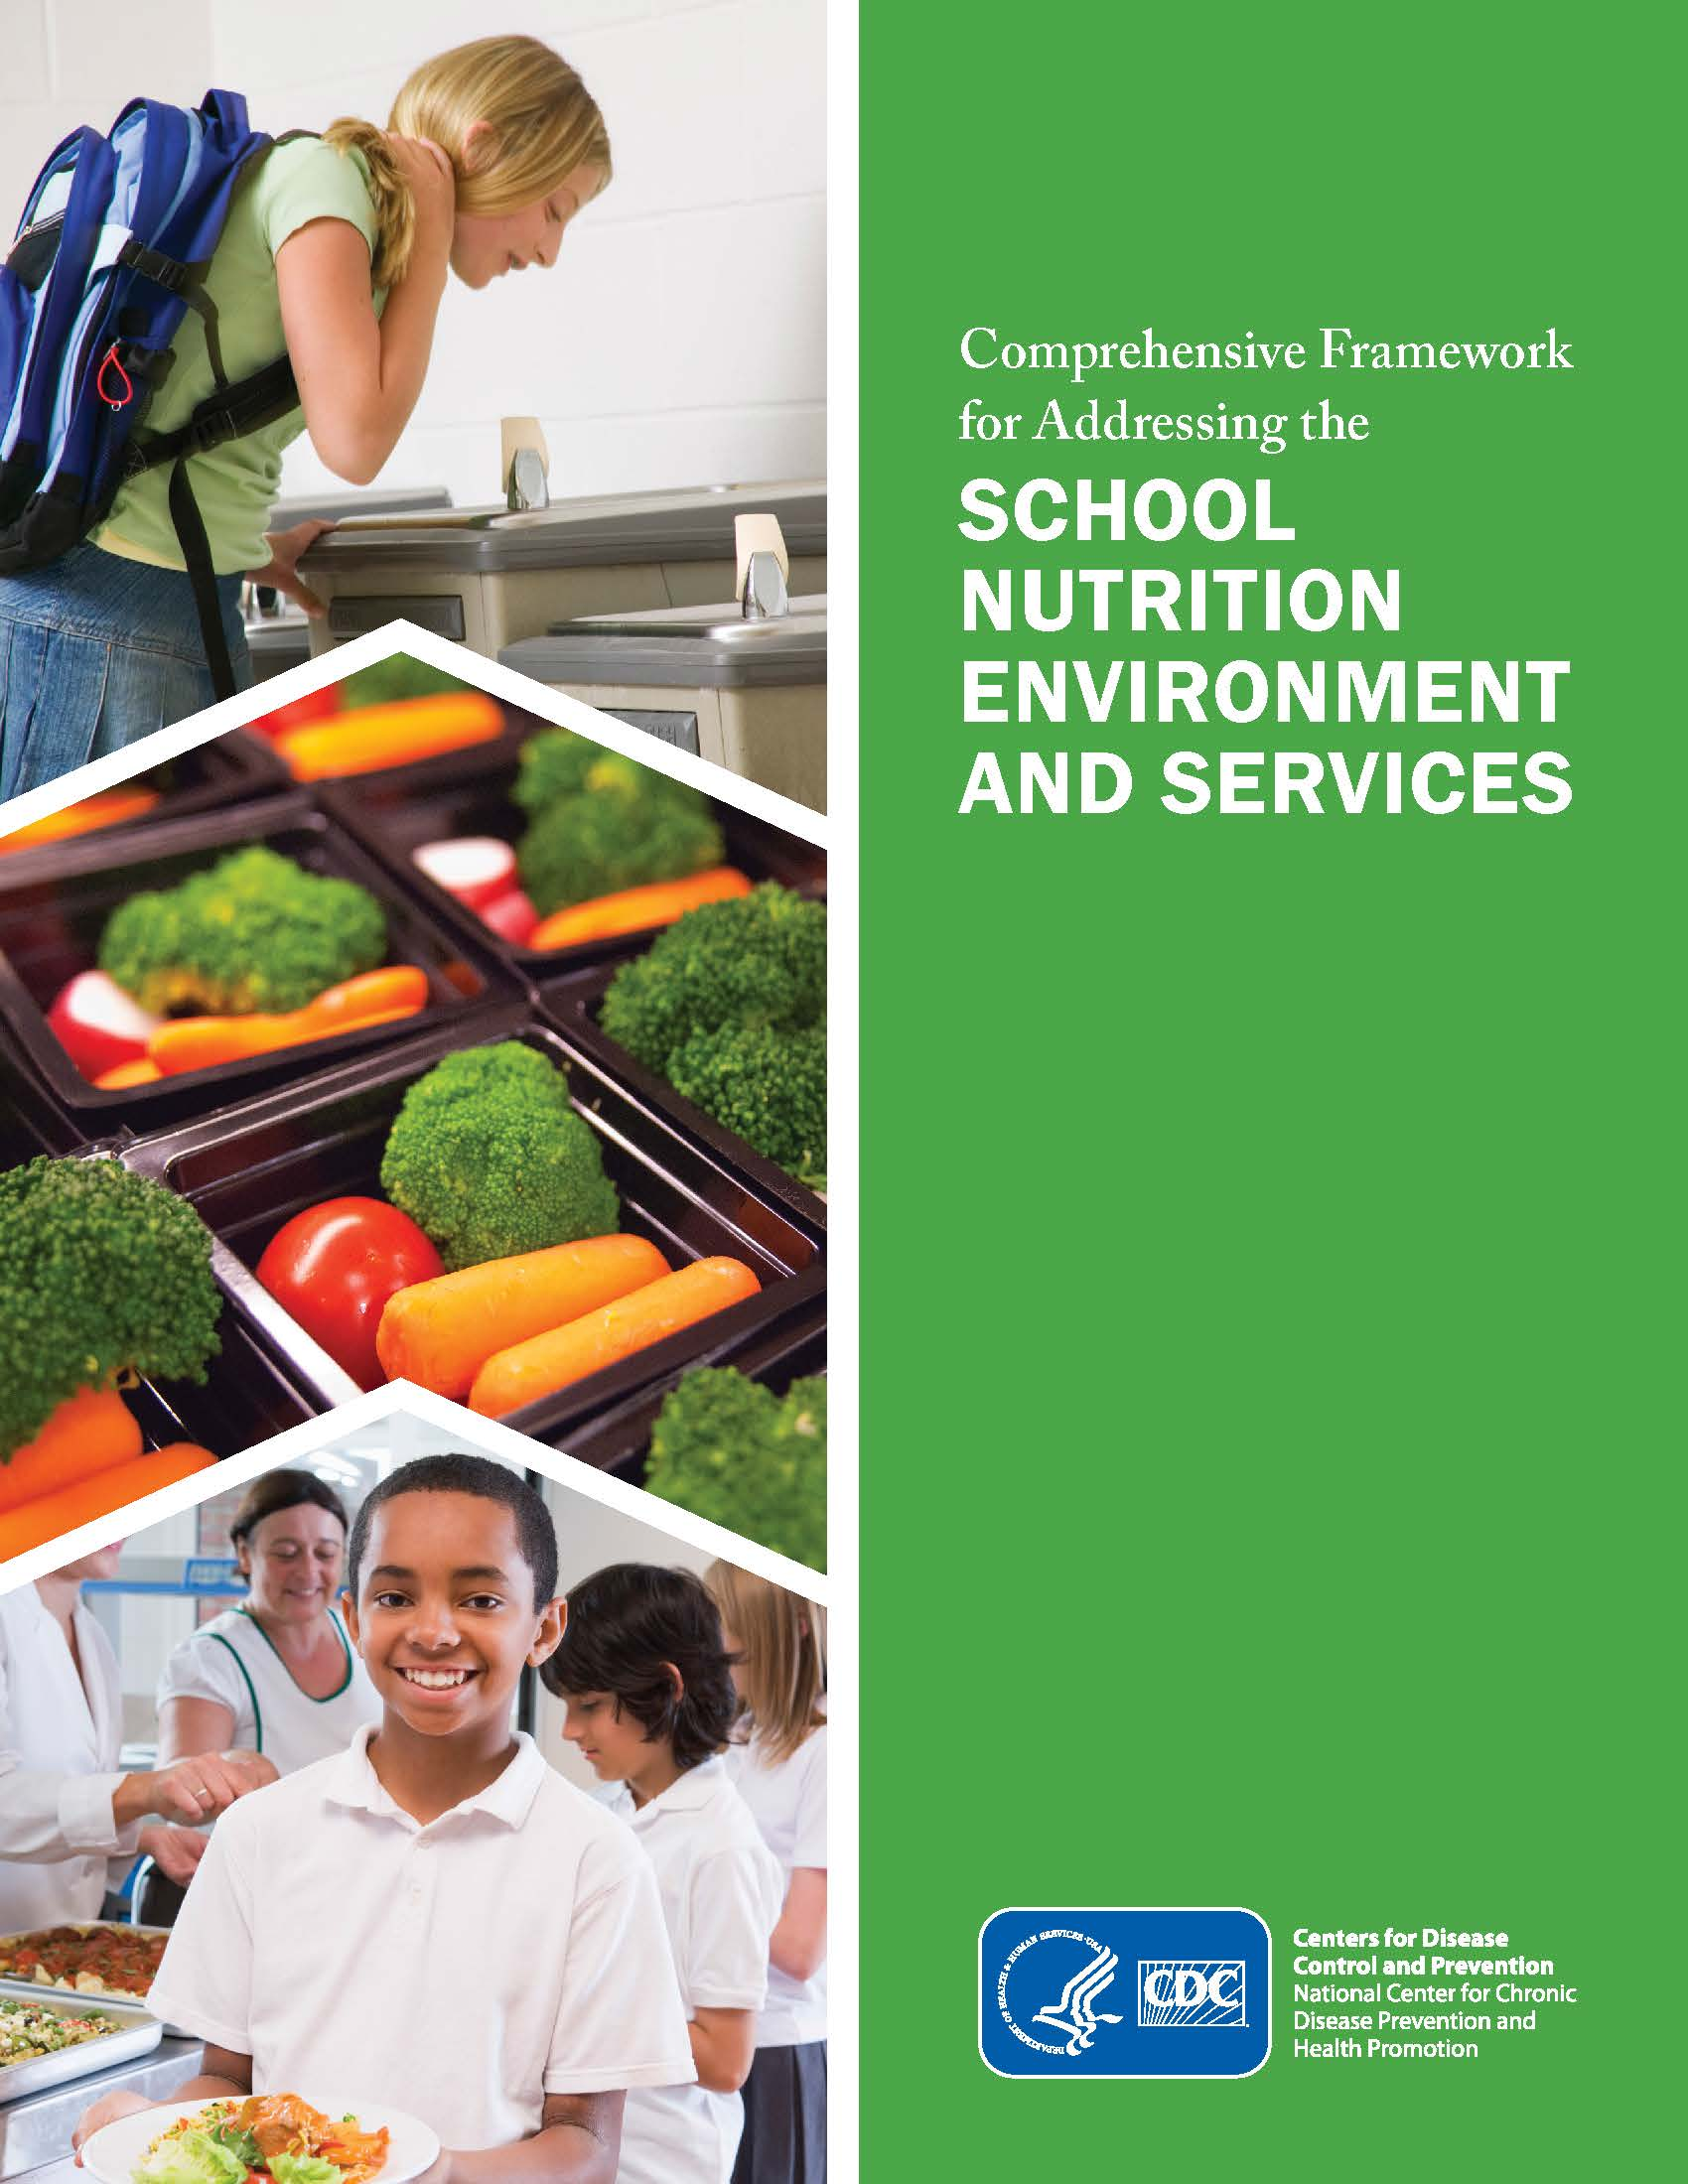 Comprehensive Framework for Addressing the School Nutrition Environment and Services cover image